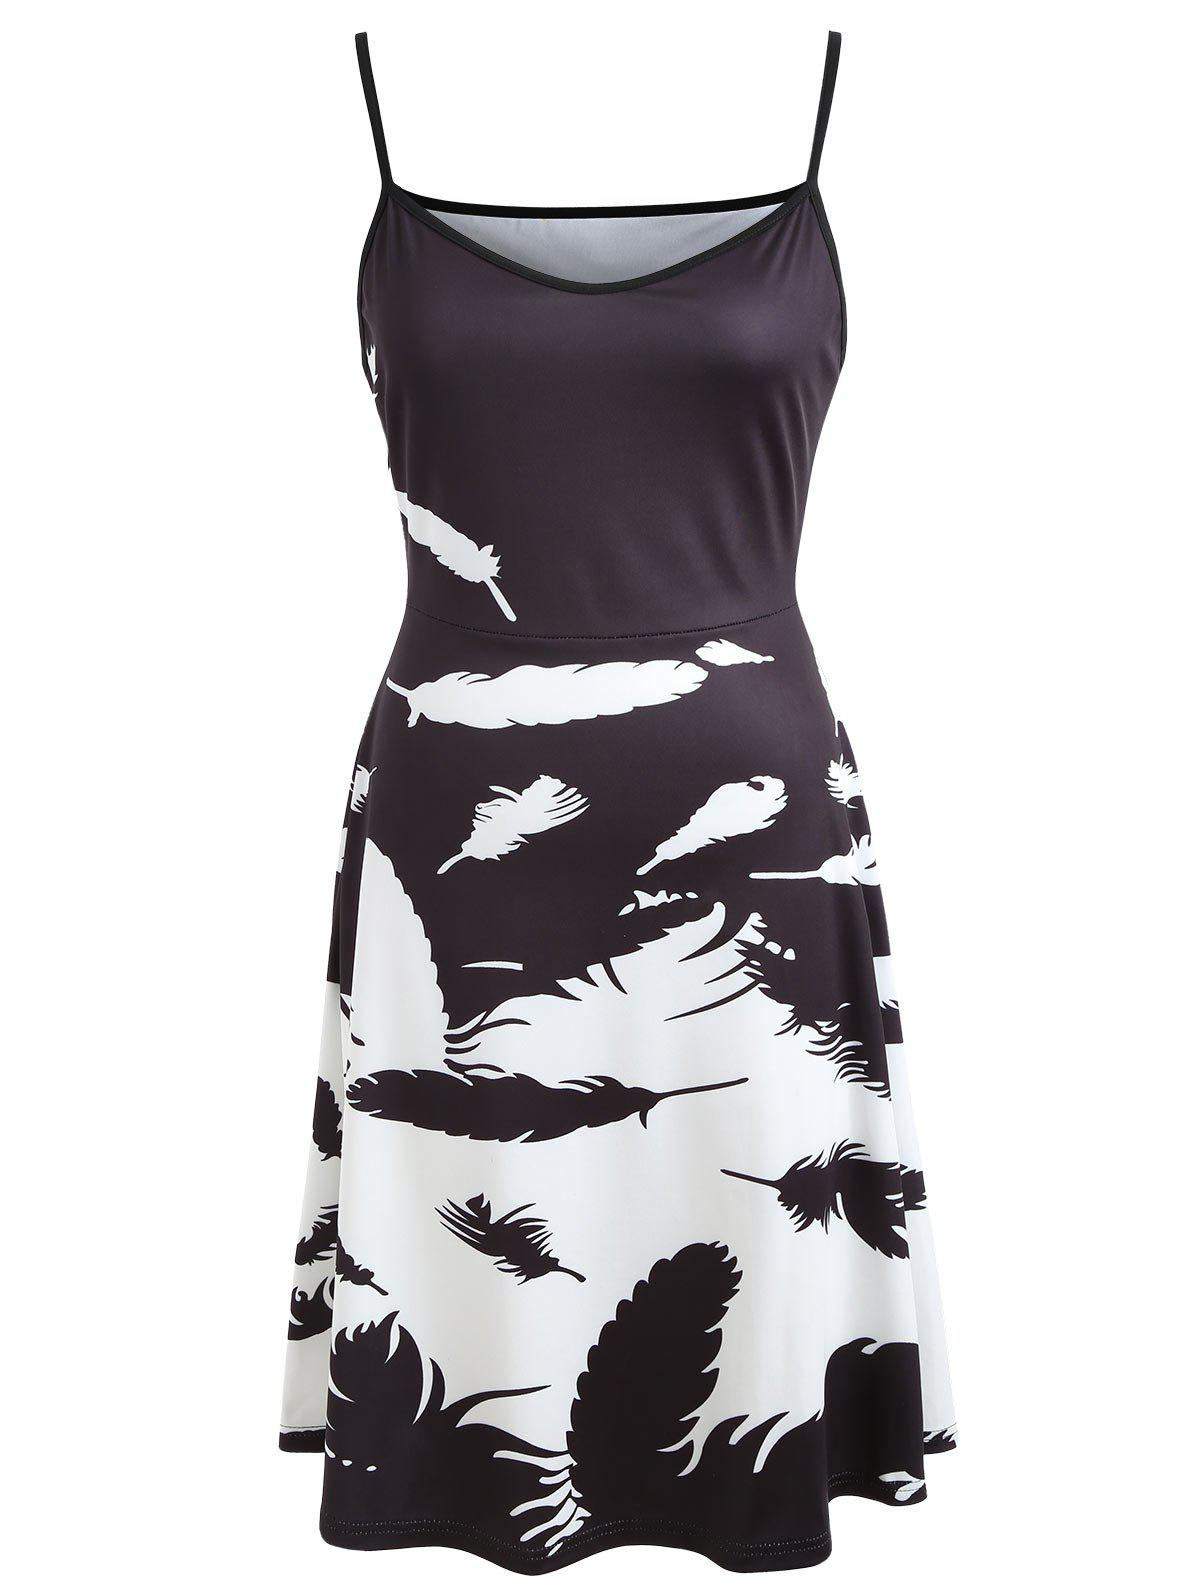 New Color Block Feather Print Slip Dress